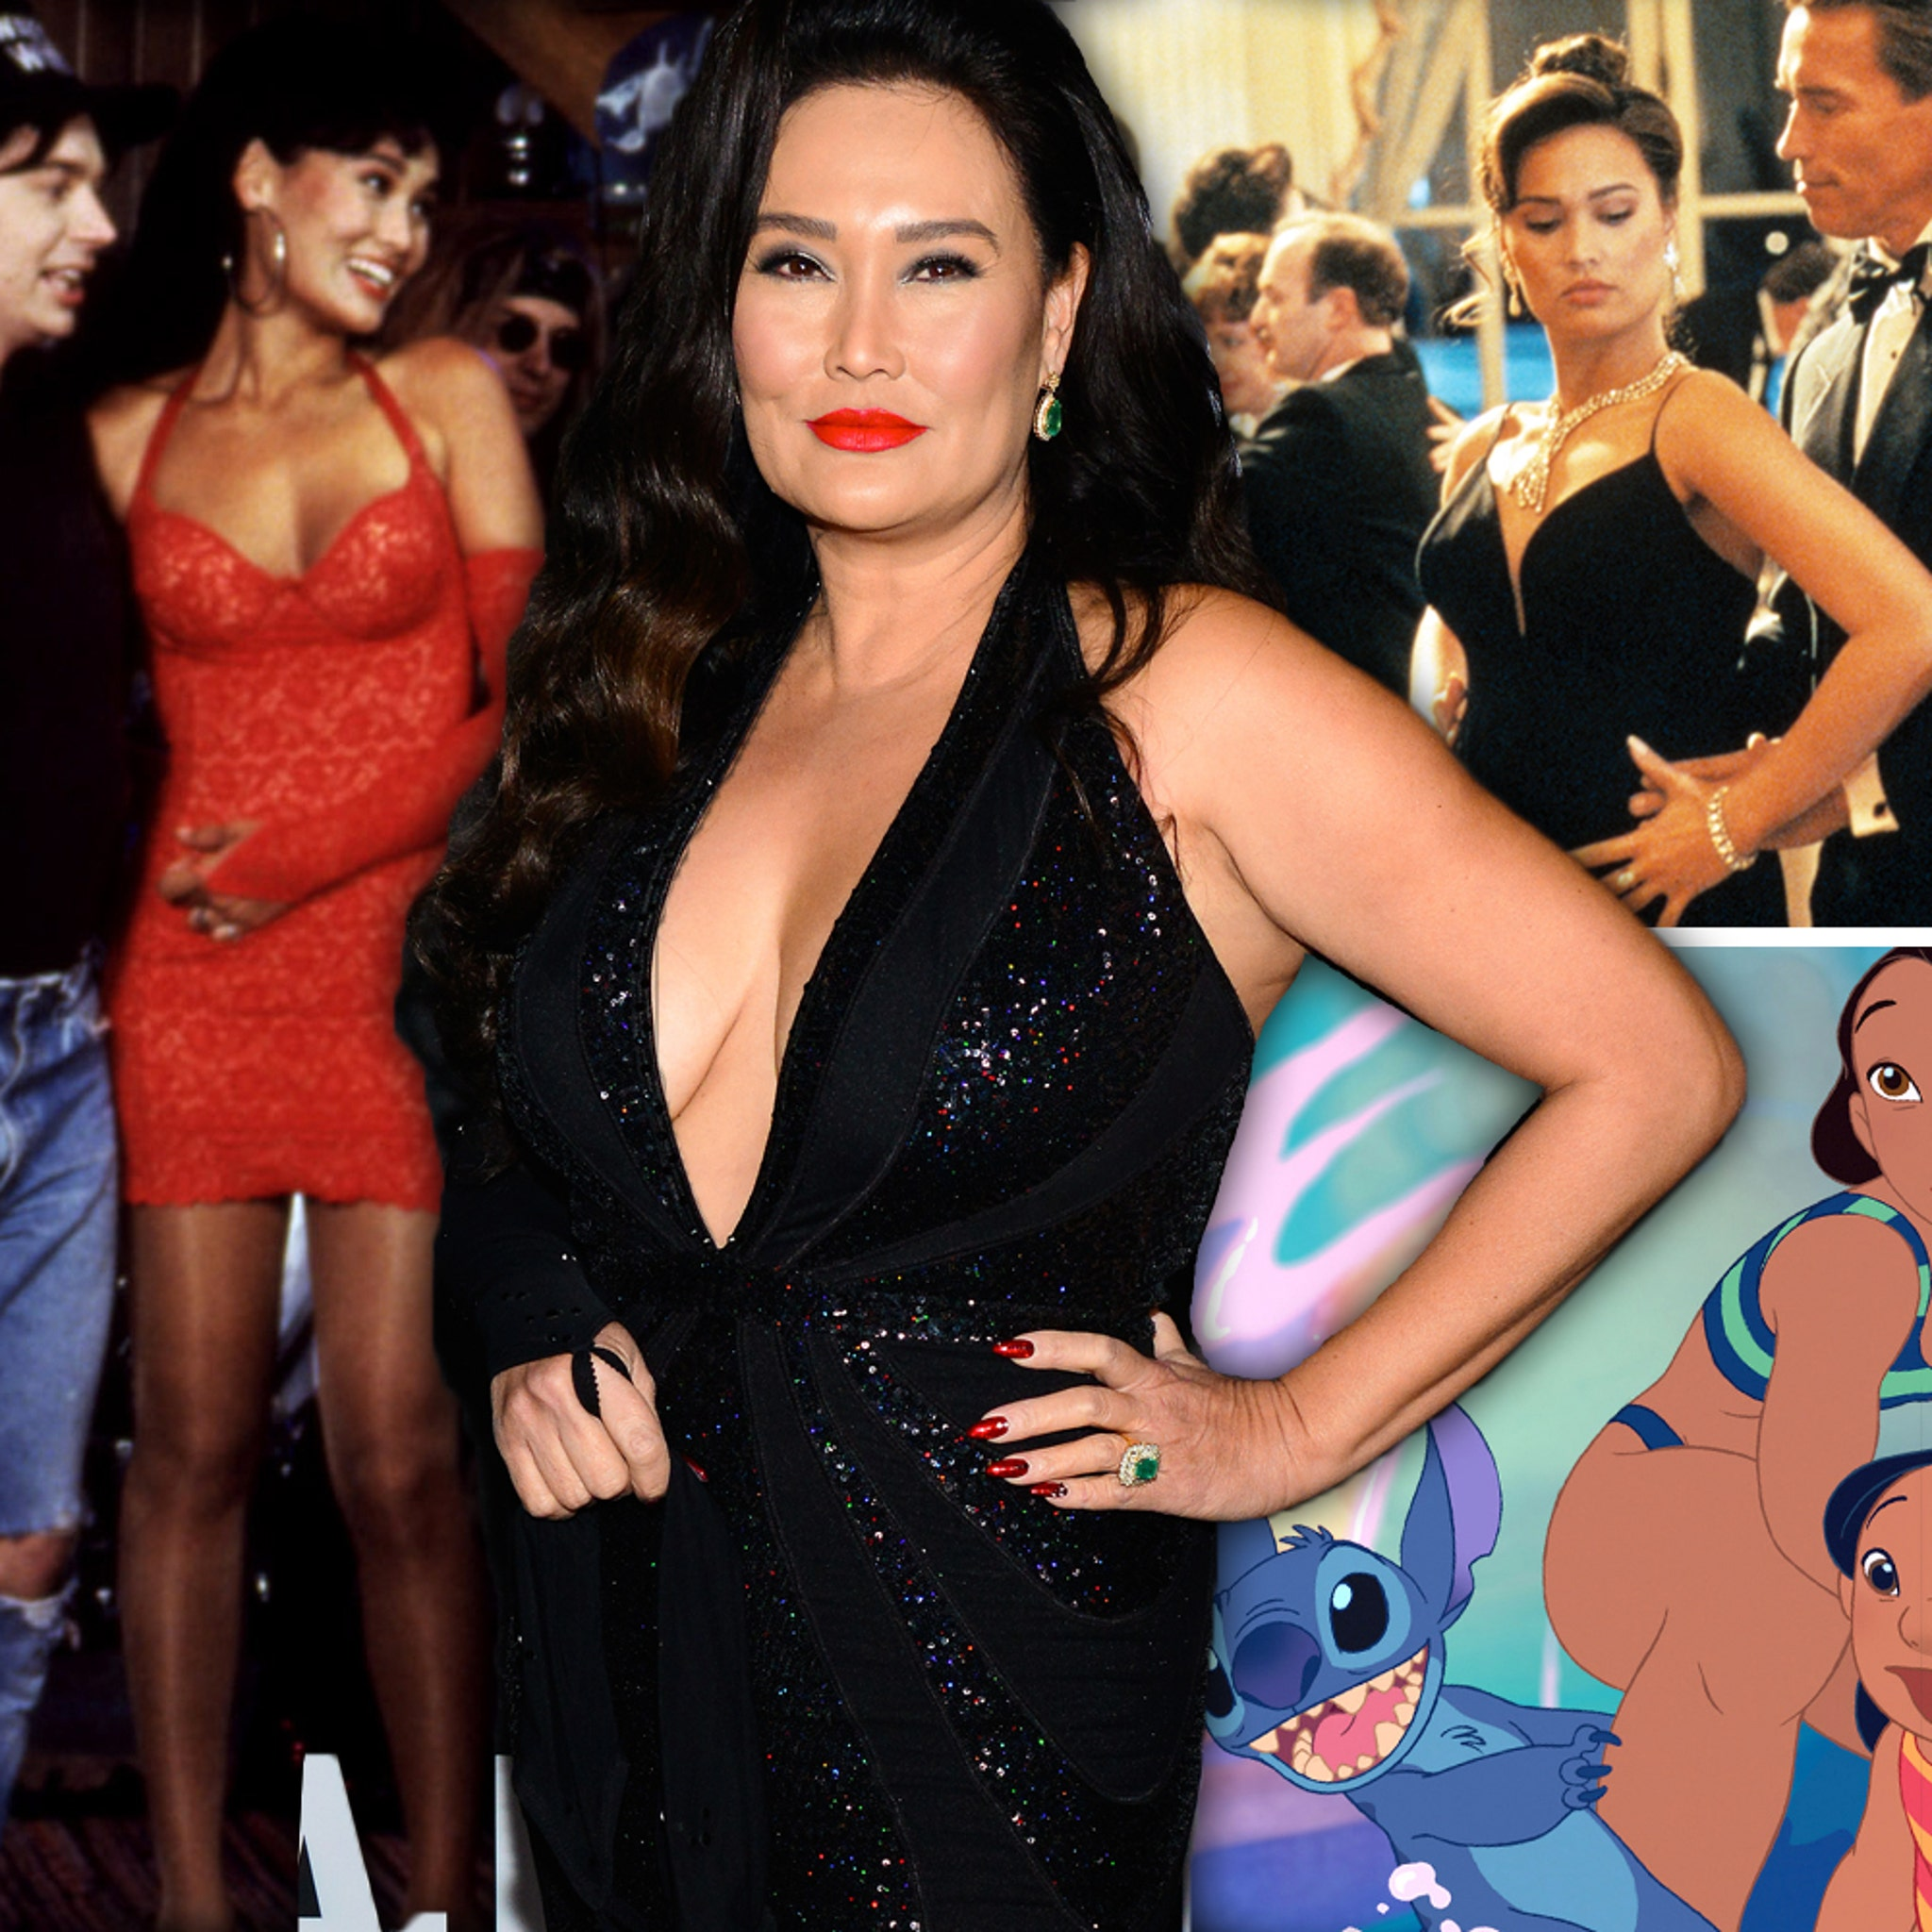 Tia Carrere Is Totally Down for a Third Wayne's World Movie